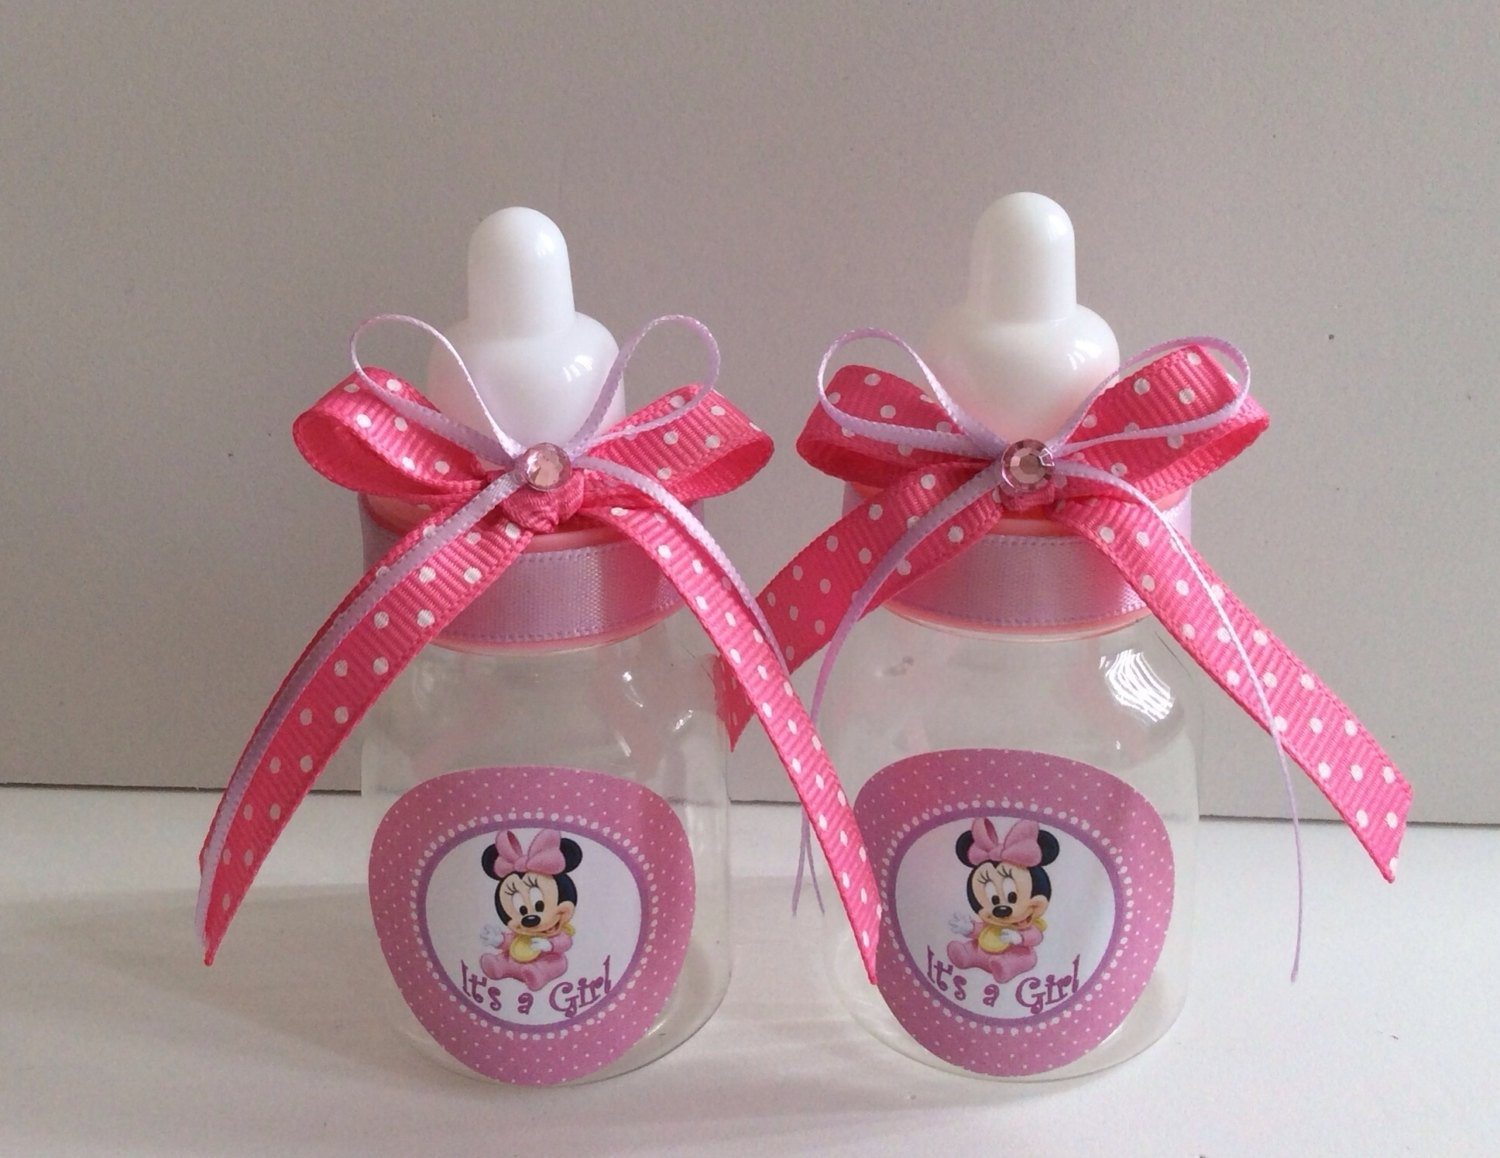 10 Wonderful Baby Minnie Mouse Baby Shower Ideas baby shower decorations minnie mouse baby shower ideas gallery